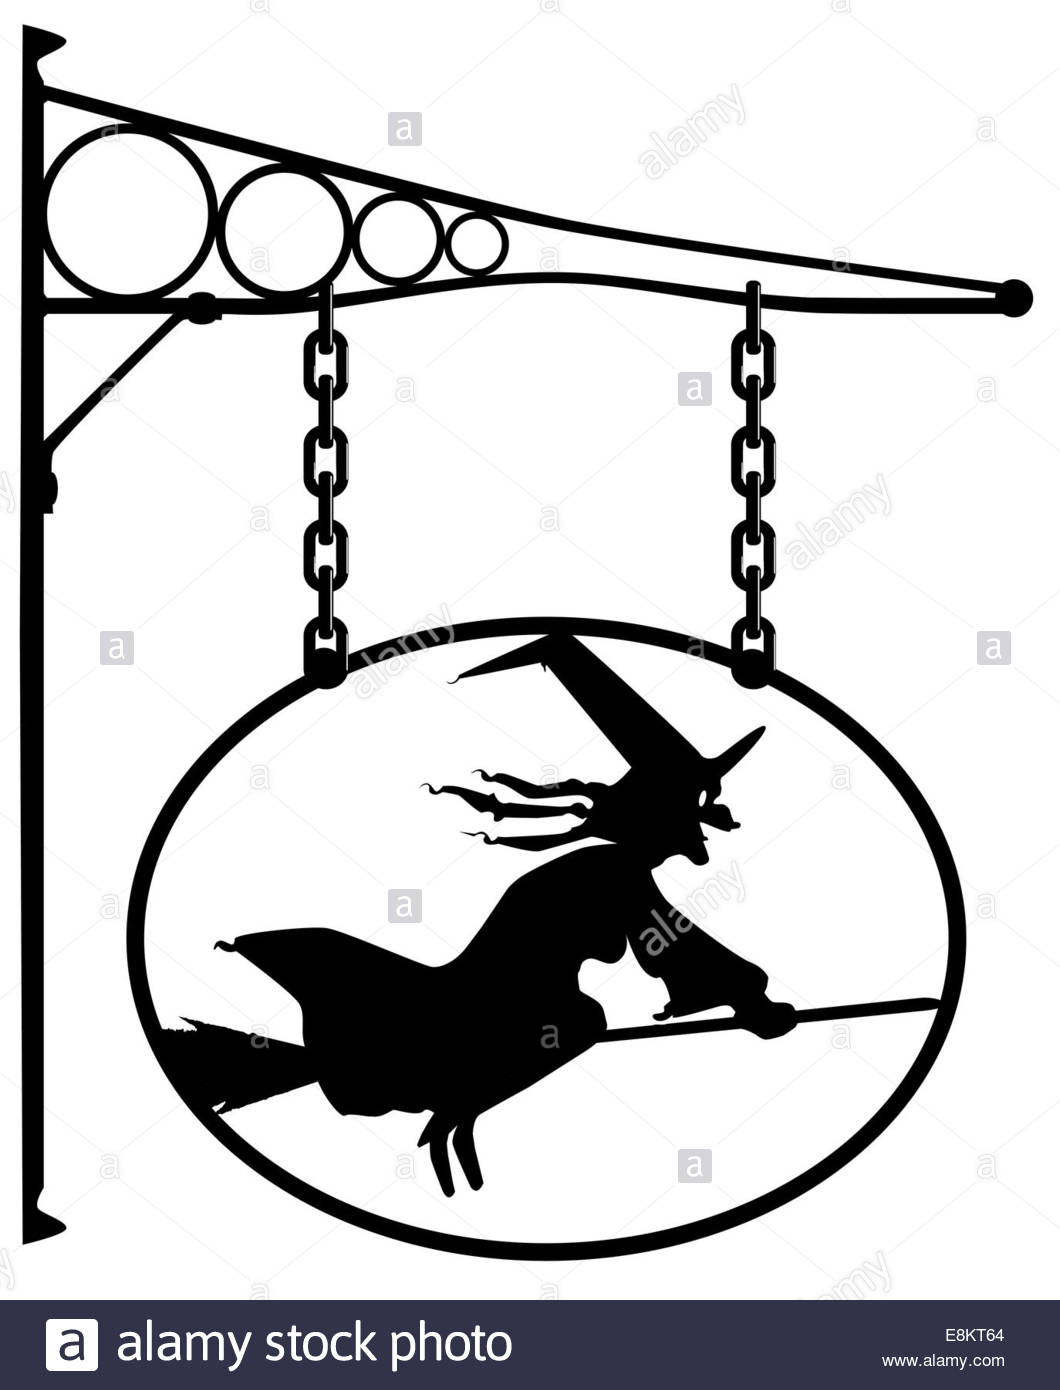 1060x1390 Oval Metal Sign With A Silhouette Of A Witch Stock Photo 74194796